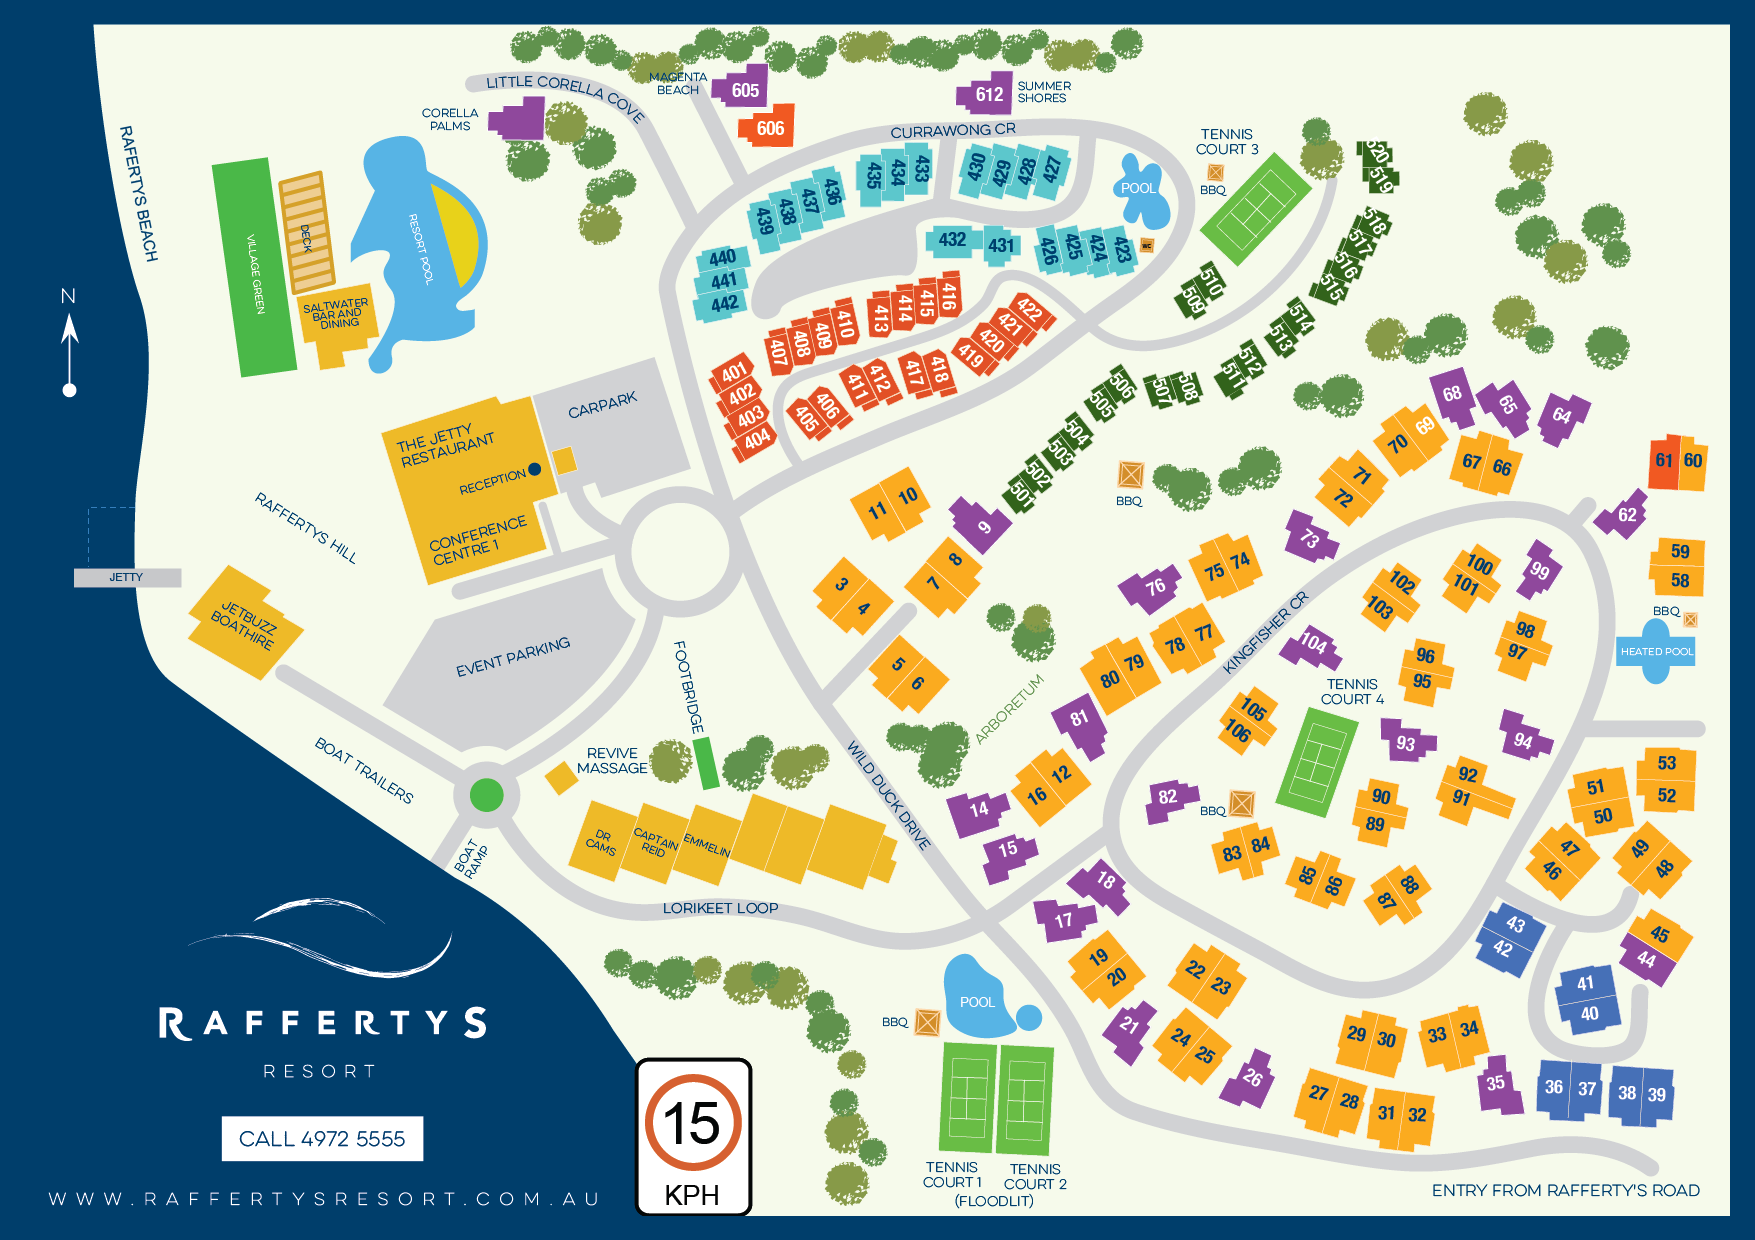 Resort Facilities and Map